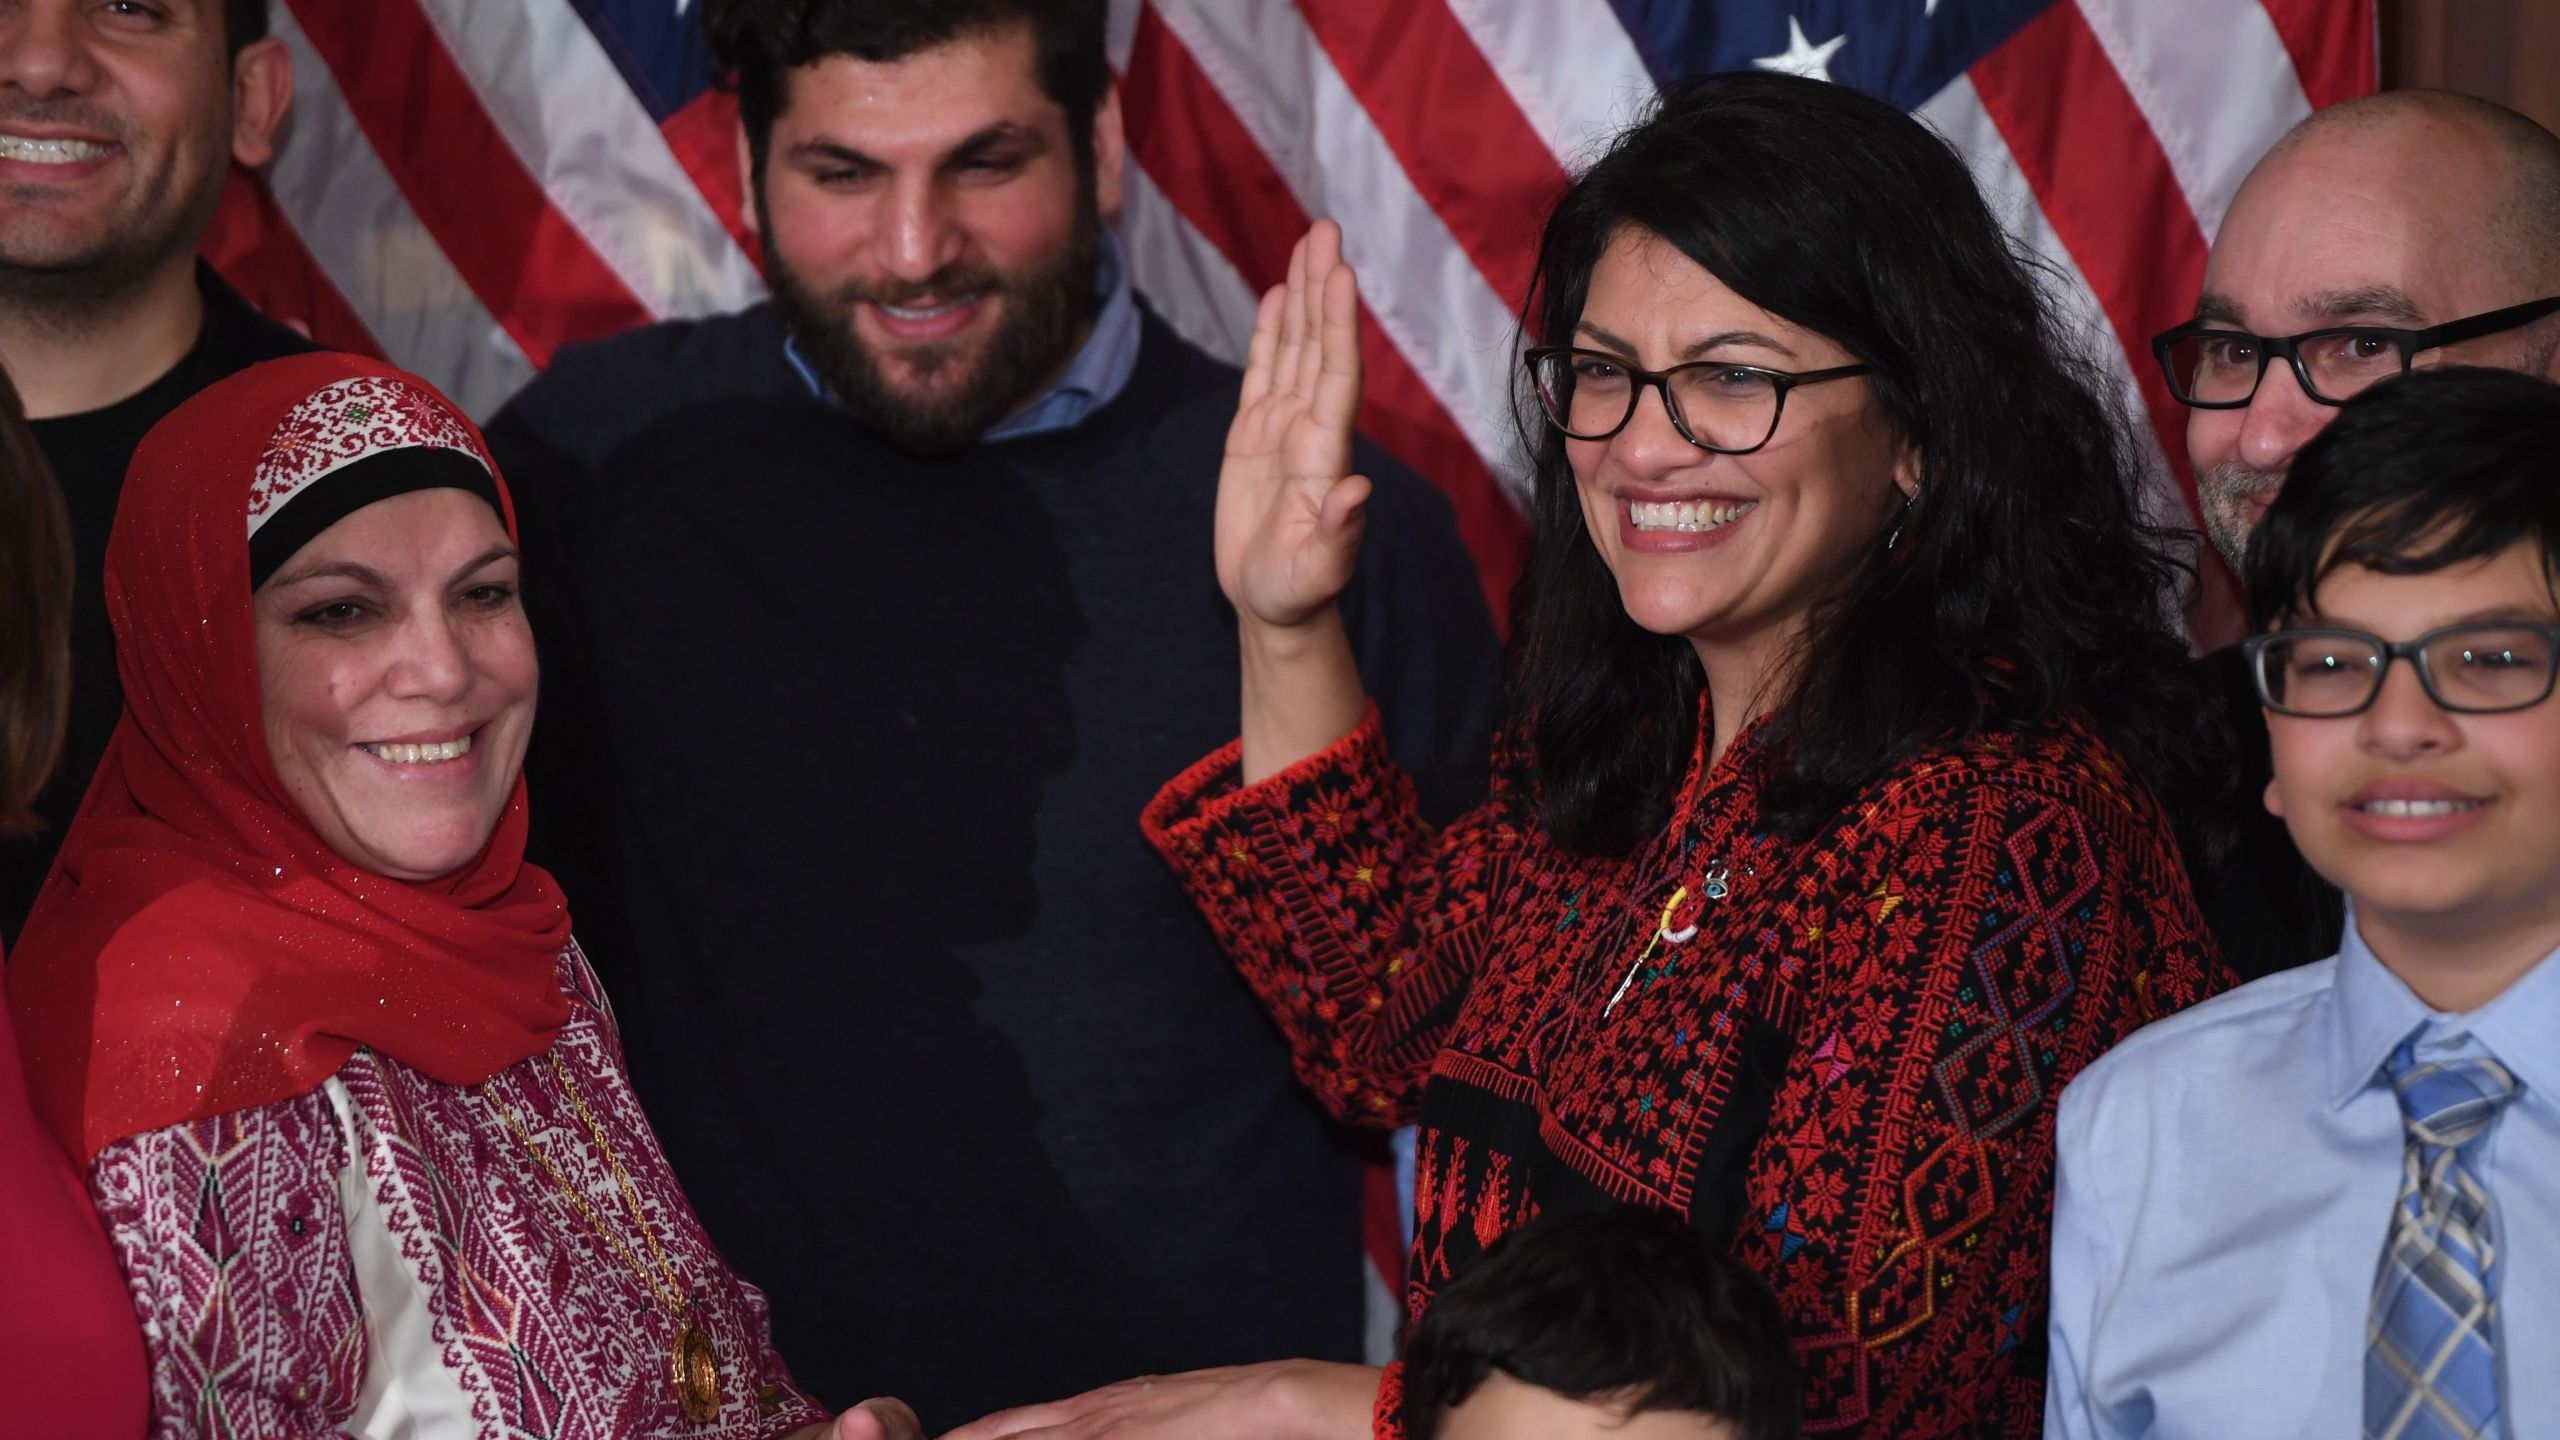 US House Representative Rashida Tlaib (D-MI), wearing a traditional Palestinian robe, takes the oath of office at the start of the 116th Congress at the US Capitol in Washington, DC, January 3, 2019. (Credit: SAUL LOEB/AFP/Getty Images)